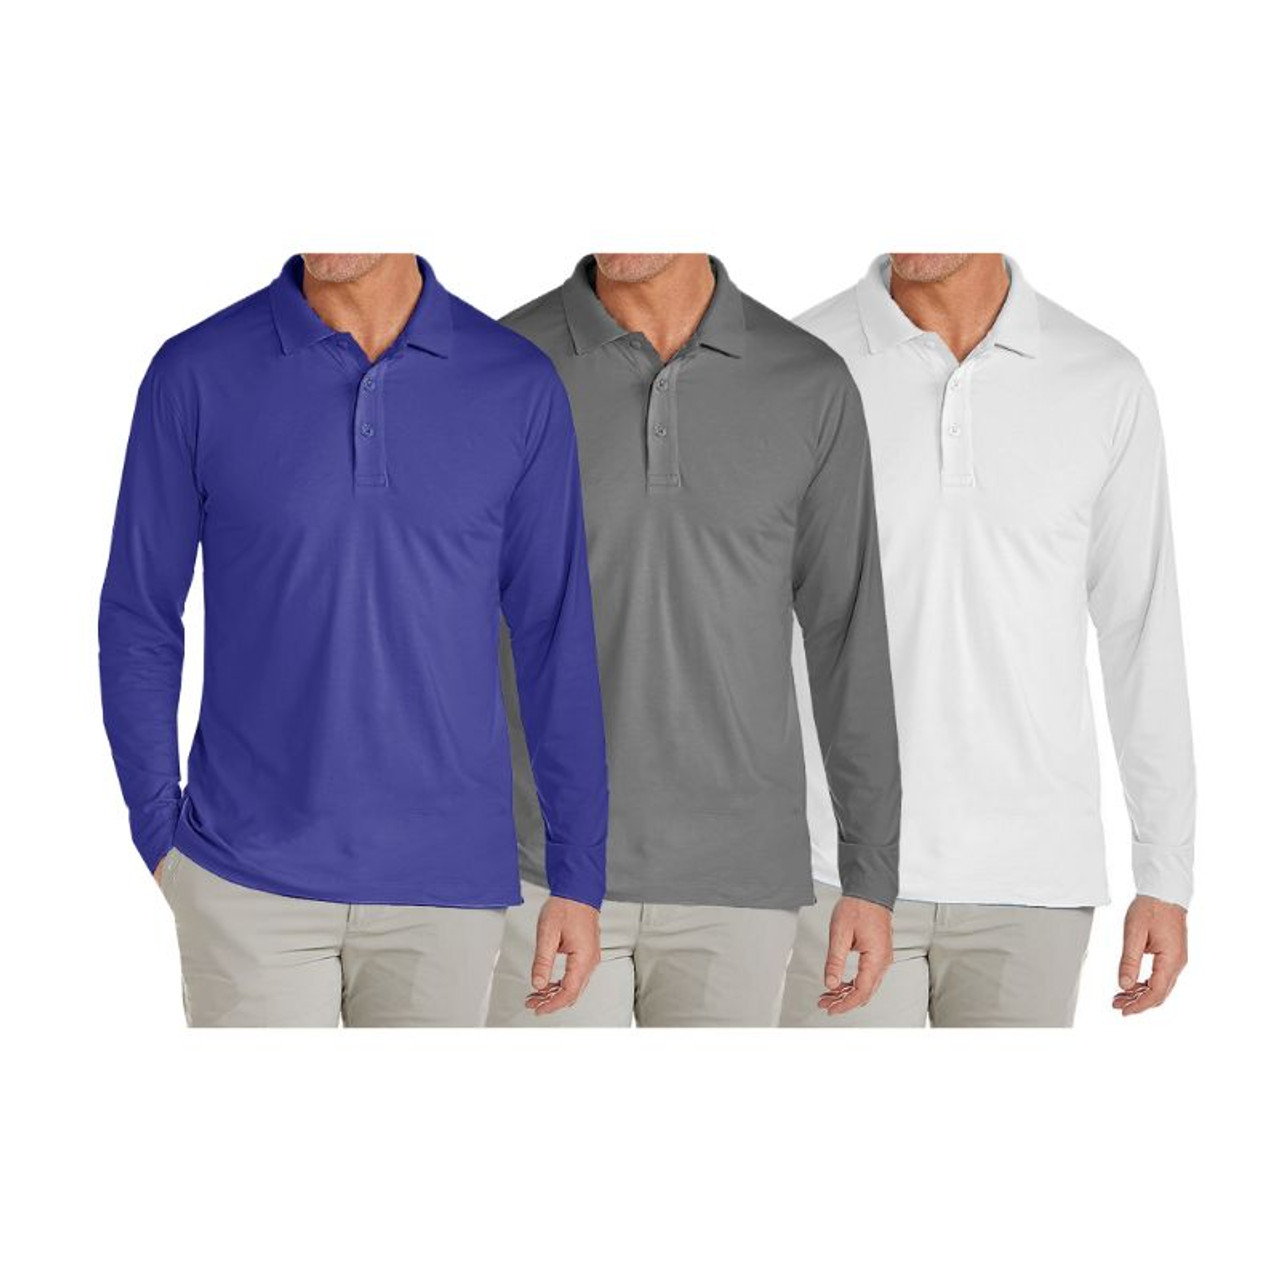 Men's Pique Long Sleeve Polo Shirts - 3 Pack